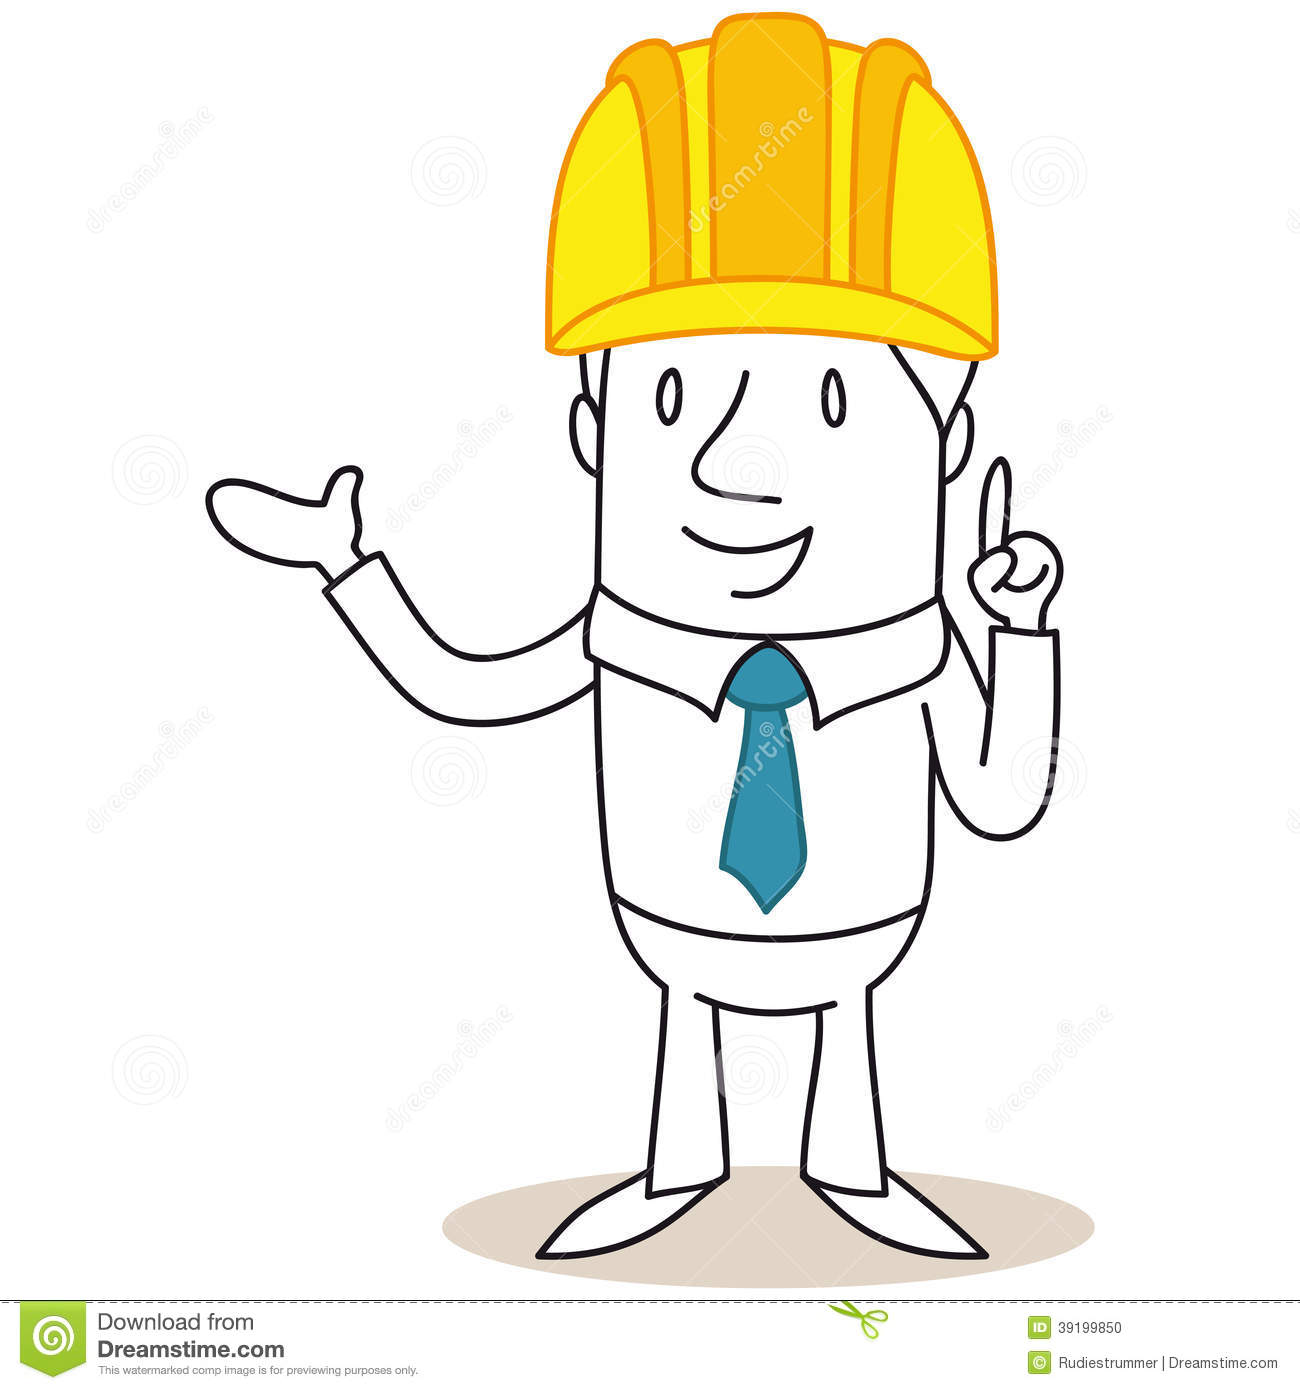 Construction Manager Cartoon : Cartoon architect construction manager pointing and